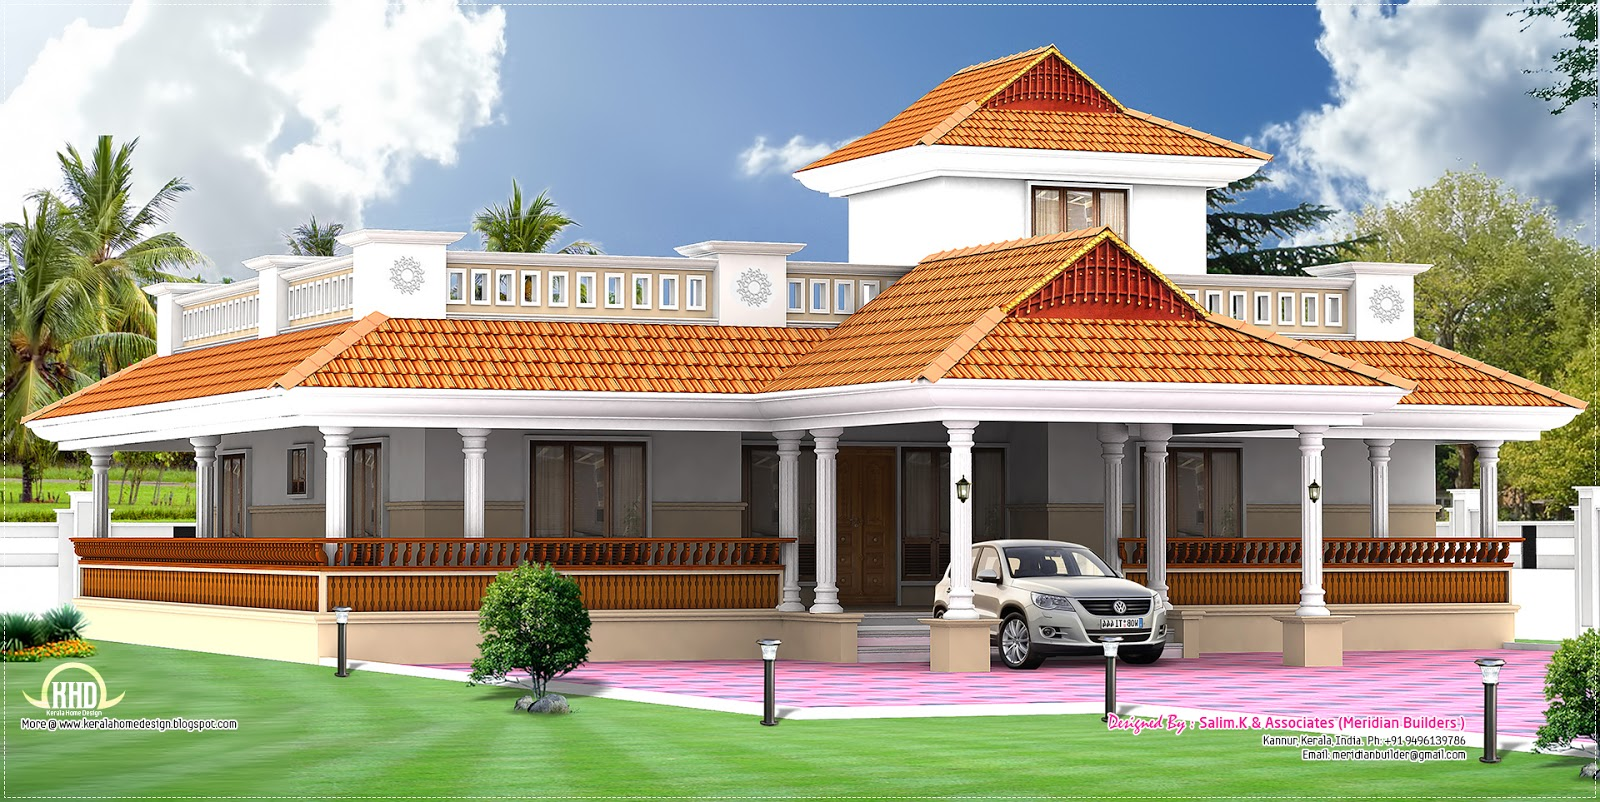 Kerala style vastu oriented 2 bedroom single storied residence | House ...